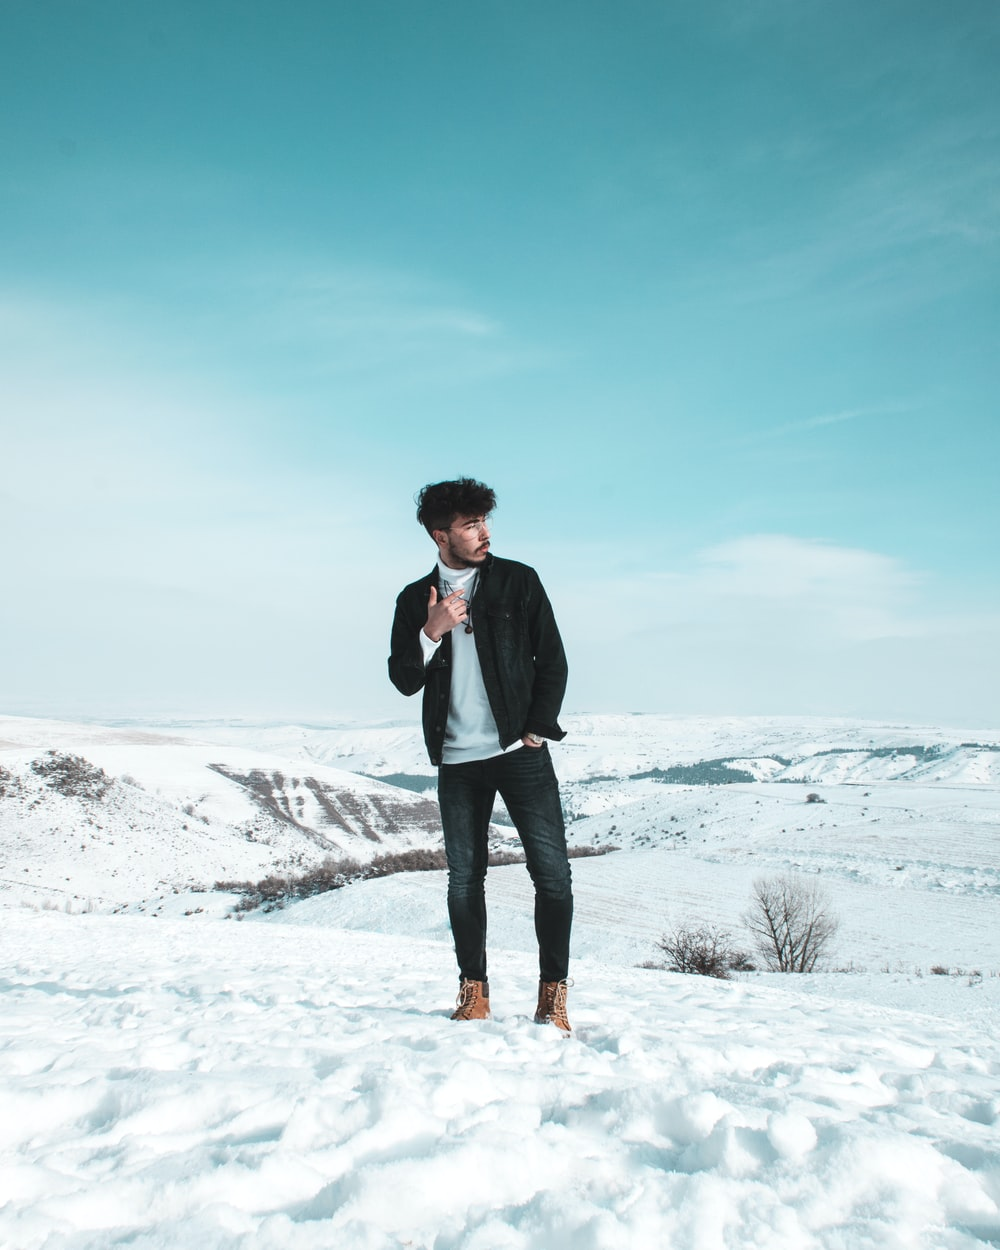 man standing on snow-covered field during daytime